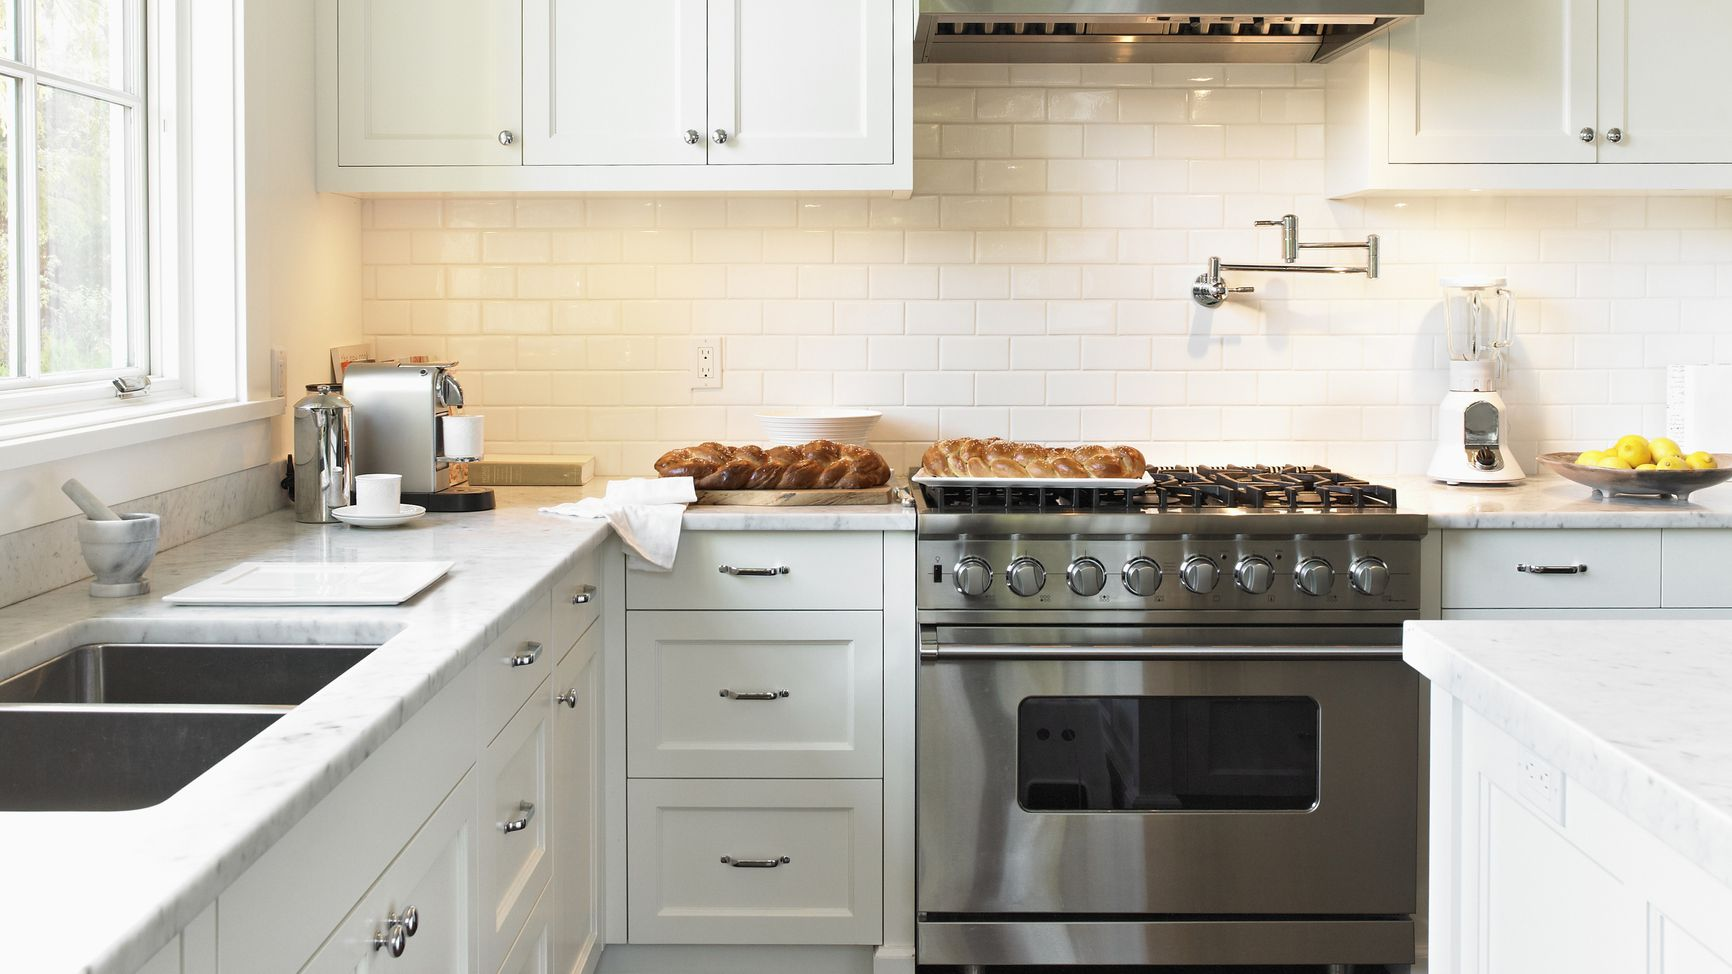 wall oven vs range: what's the difference?